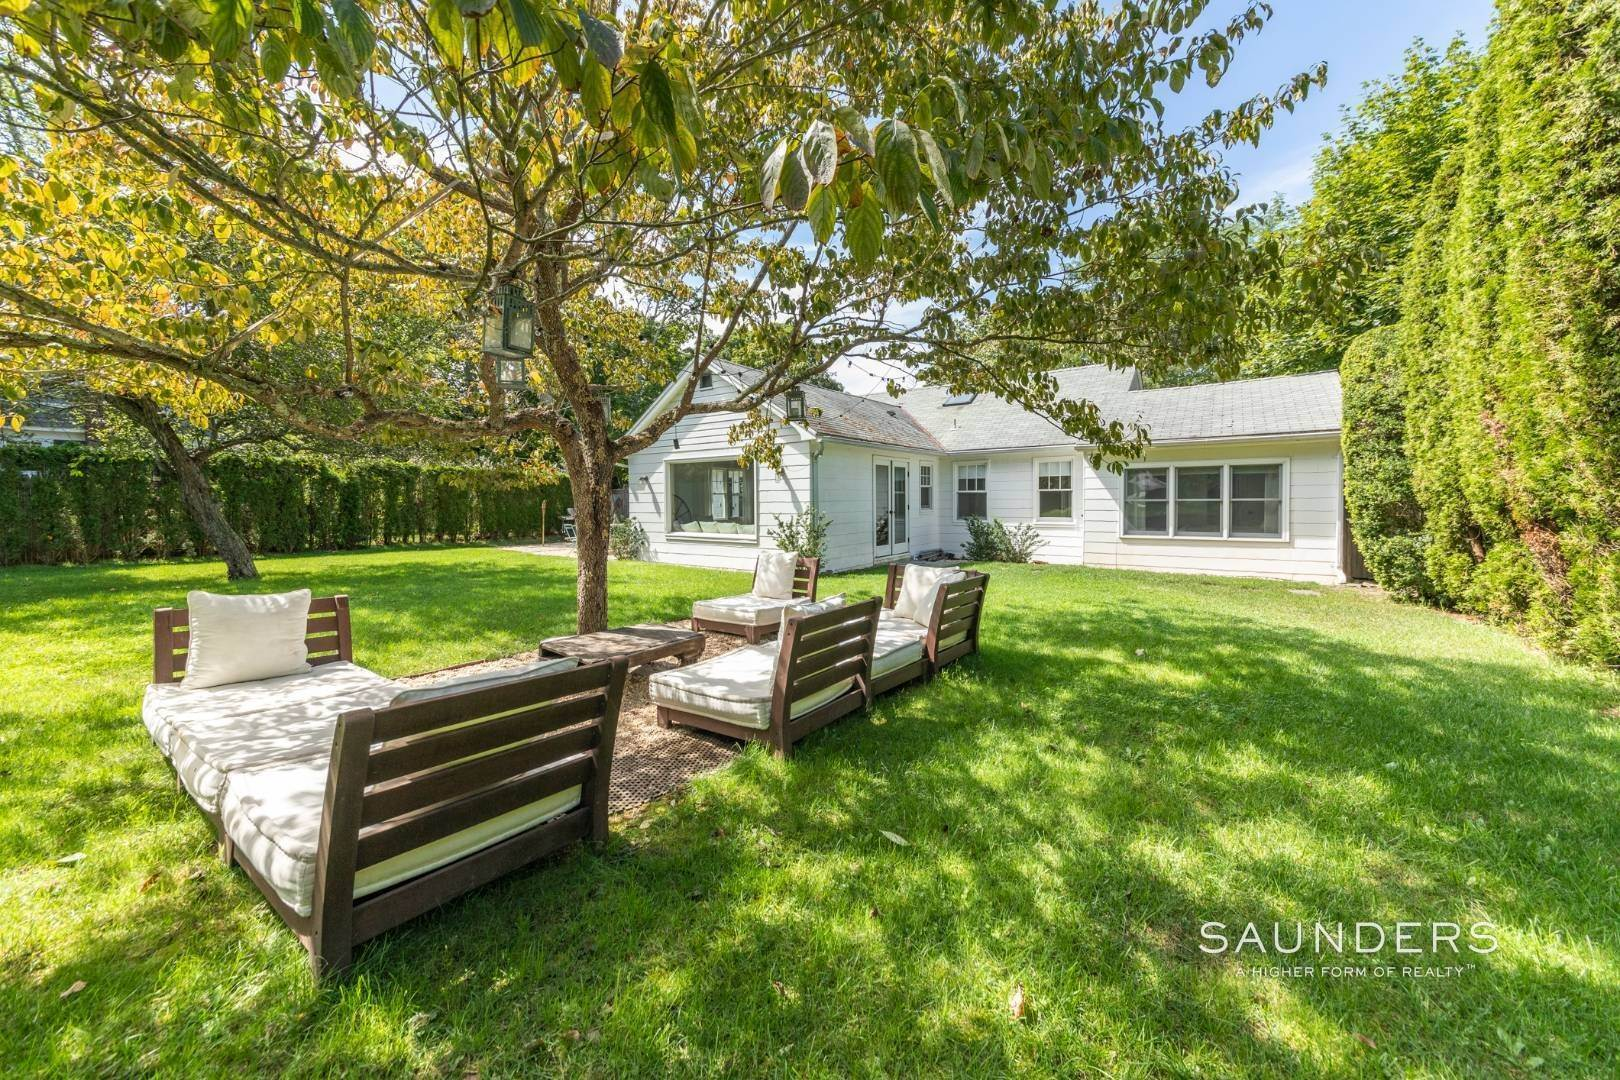 2. Single Family Homes for Sale at South Of Highway - Turnkey Charmer 136 Cove Hollow Road, East Hampton, East Hampton Town, NY 11937